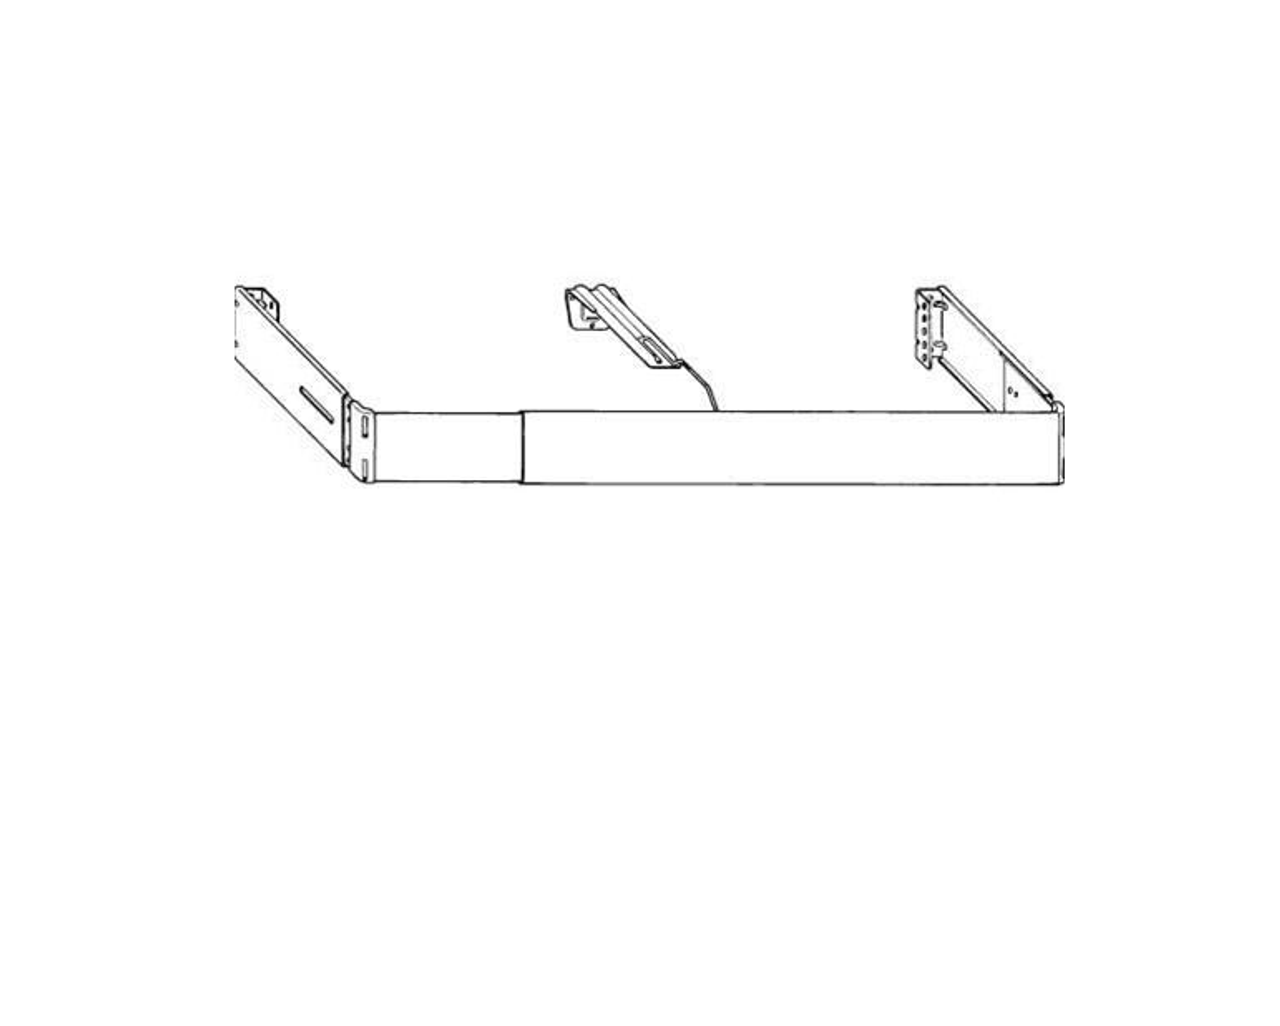 kirsch 2 1 2 continental ii valance rod kit price vary based on length selected